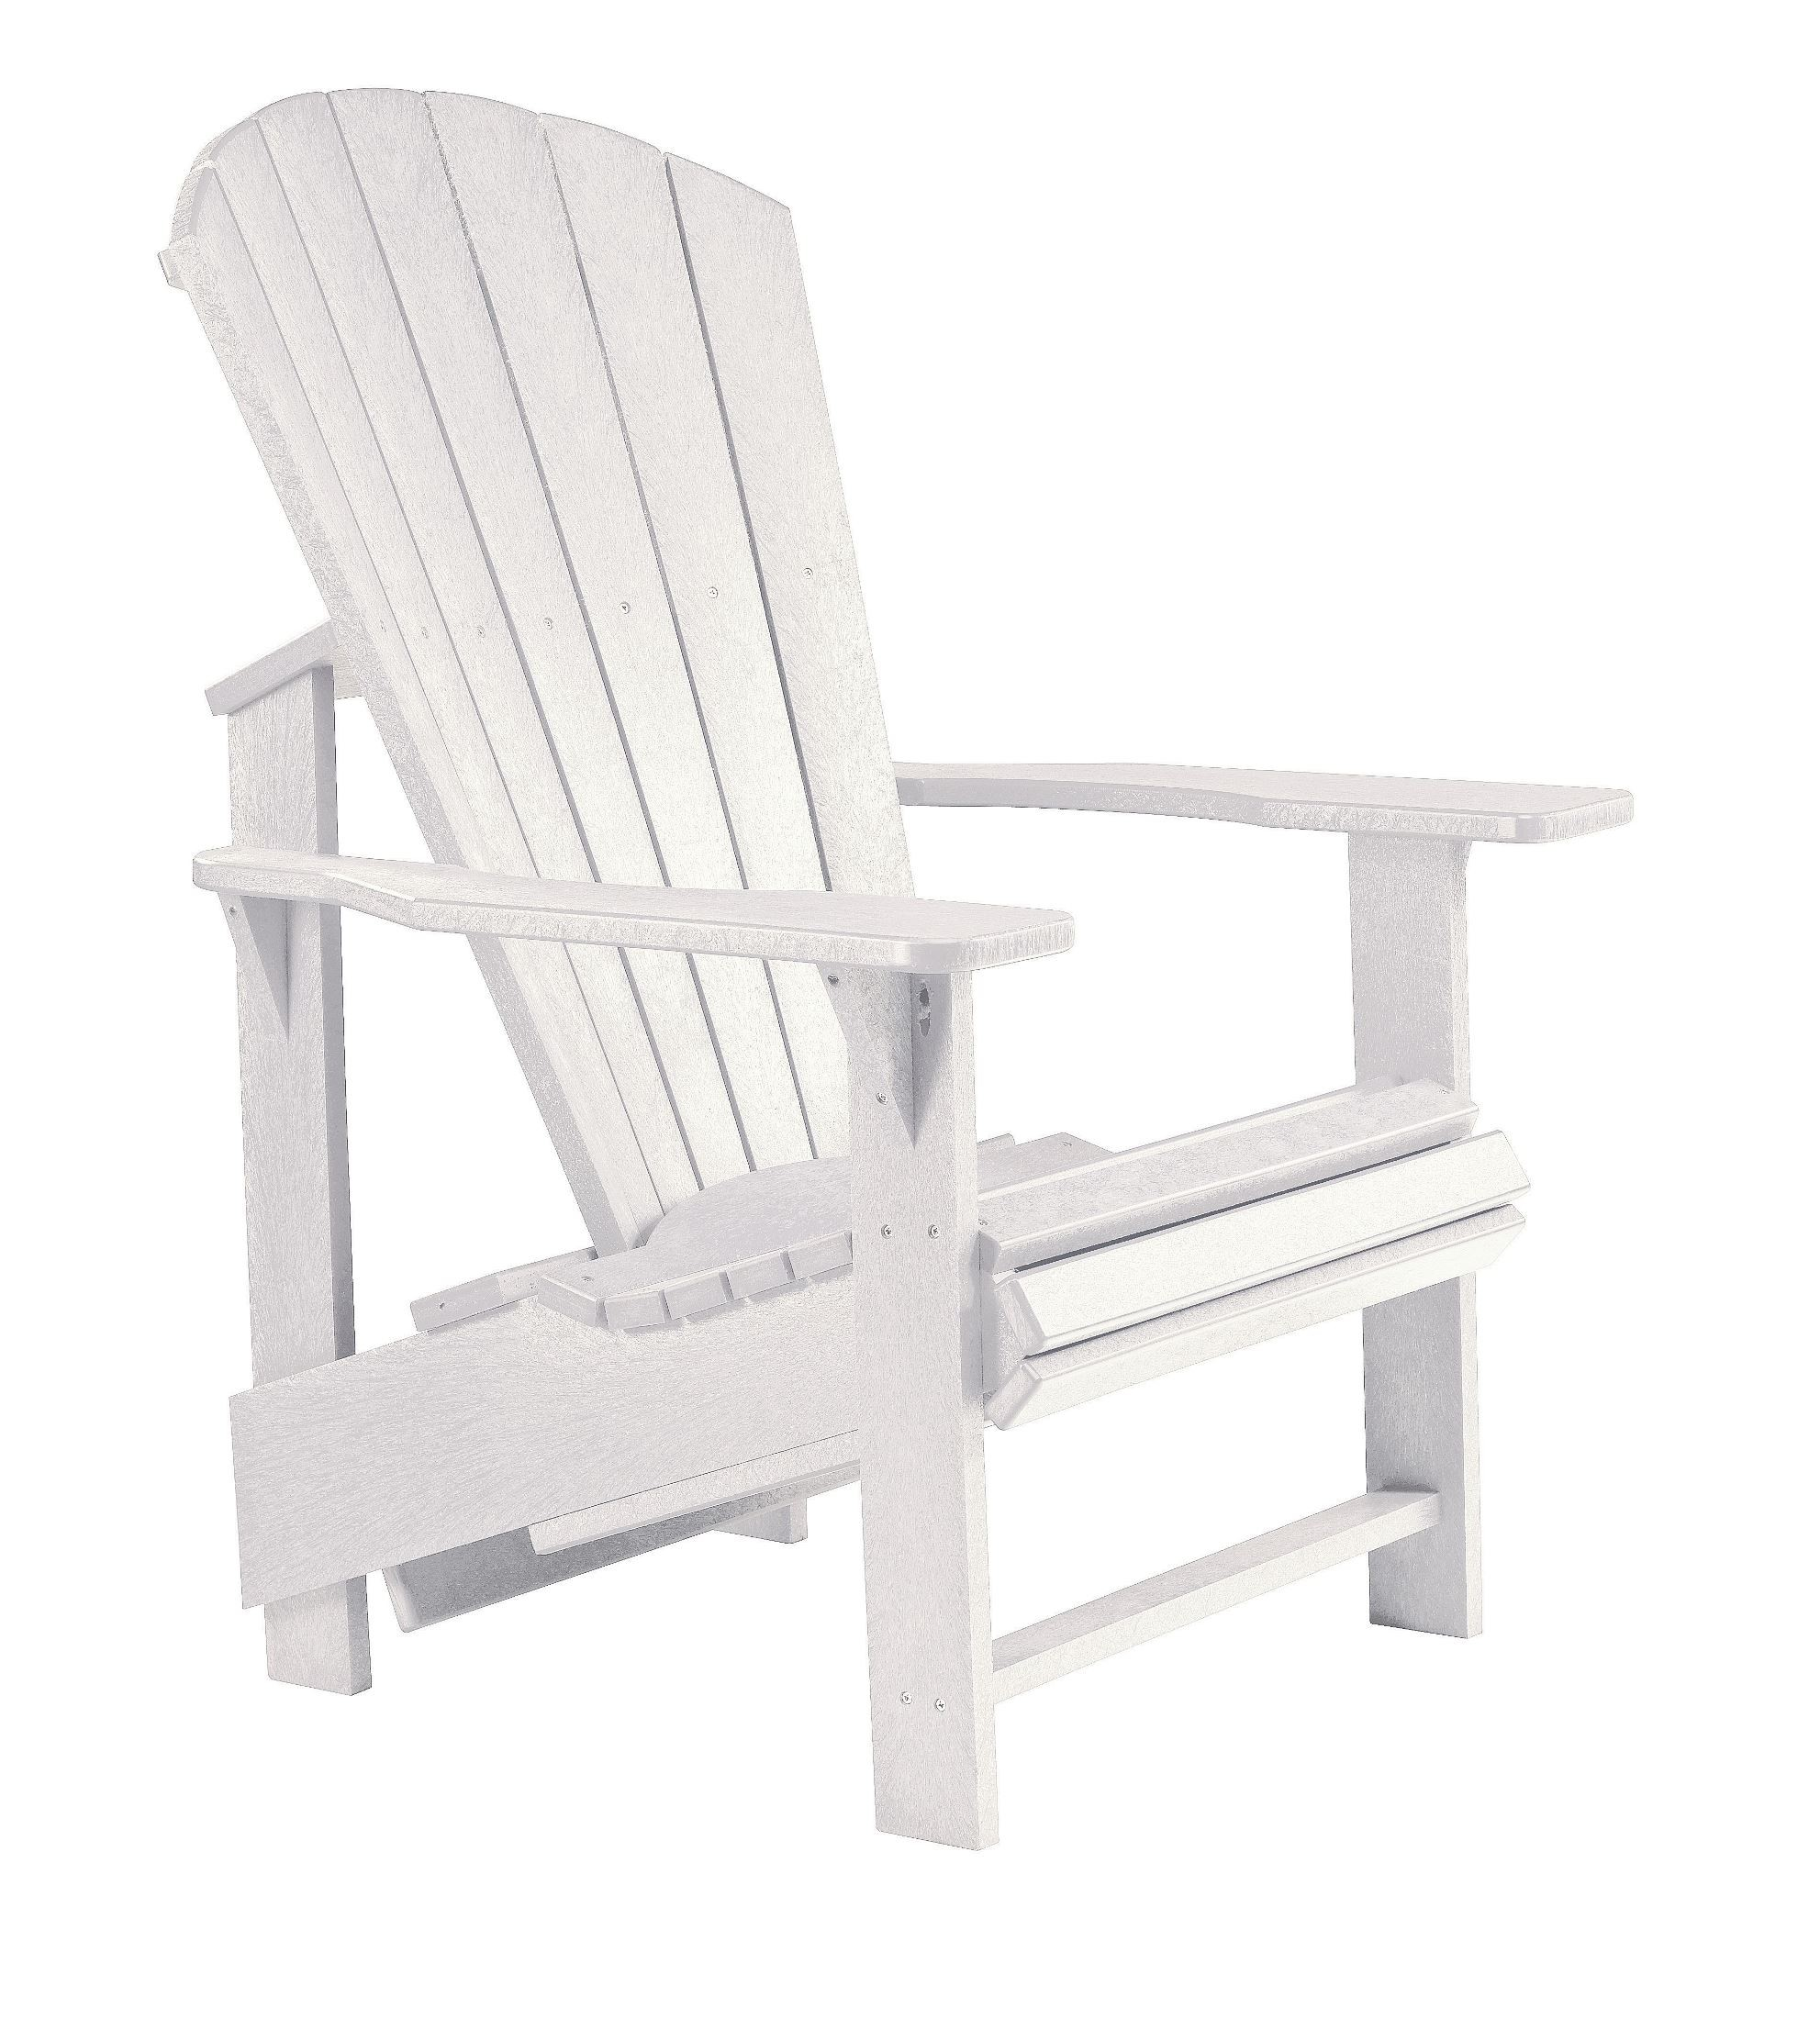 generations white upright adirondack chair from cr plastic c03 02 coleman furniture. Black Bedroom Furniture Sets. Home Design Ideas